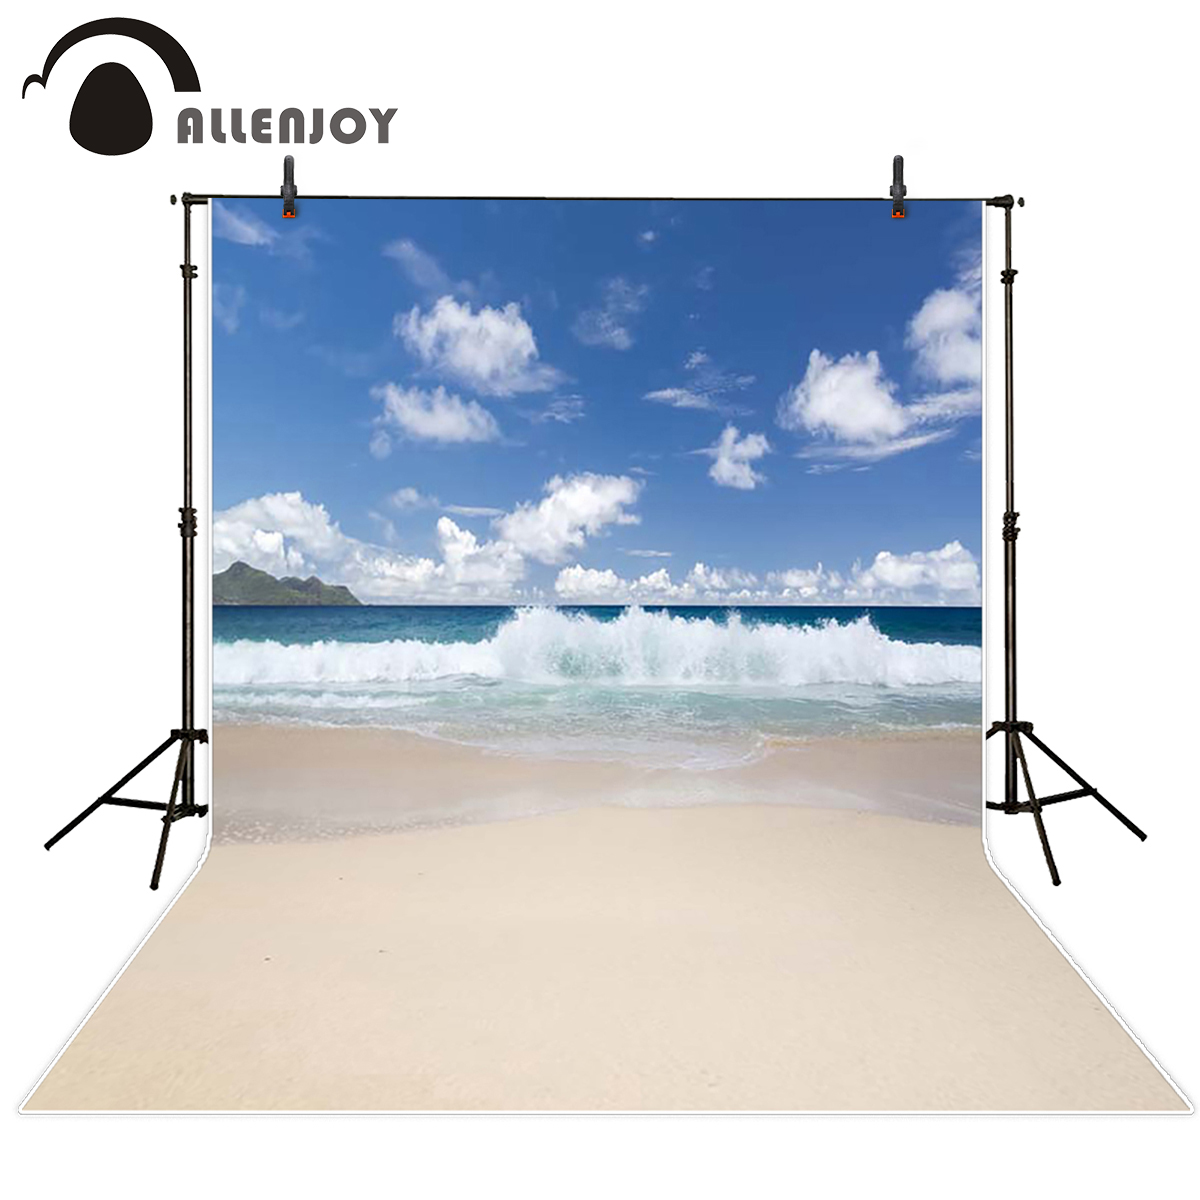 Allenjoy seaside Photo background spindrift the distant mountain blue sea water clouds photography backdrops photograph